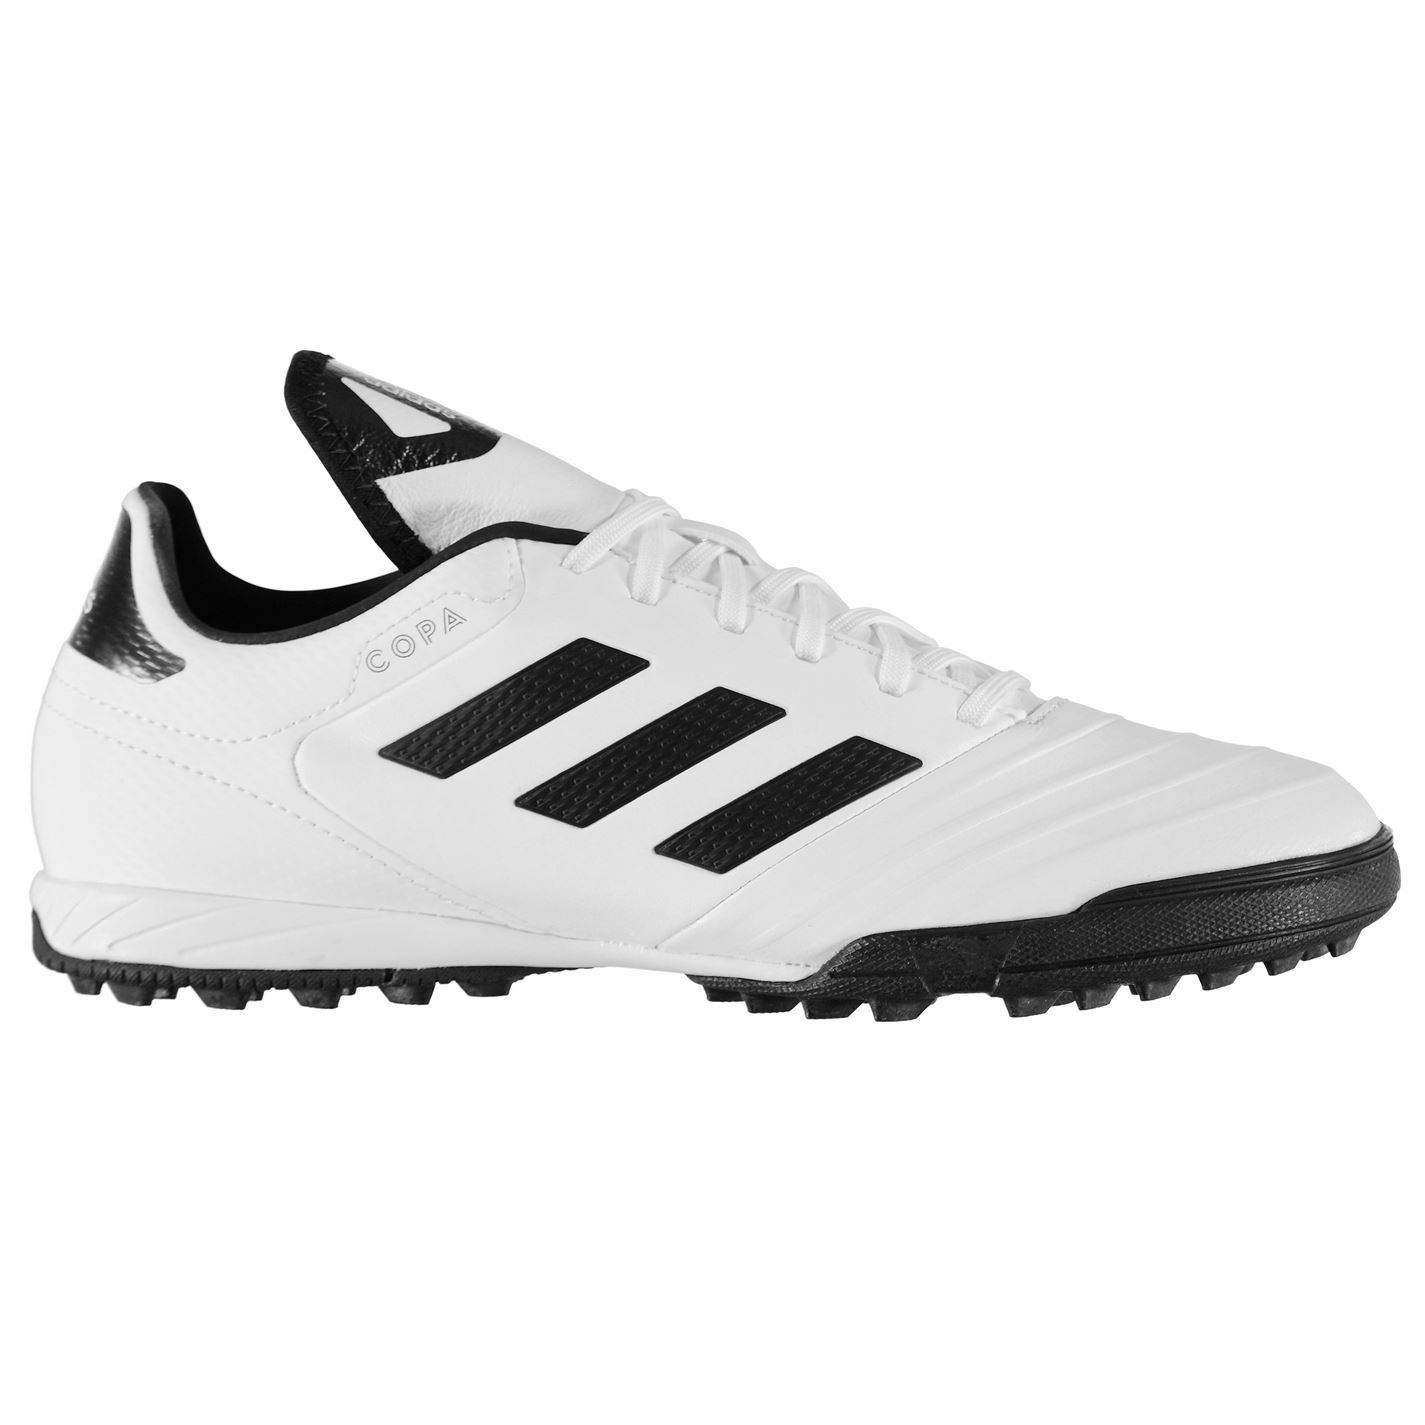 cf1f7eaac20 ... adidas Copa Tango 18.3 Astro Turf Football Trainers Mens White Soccer  Shoes ...